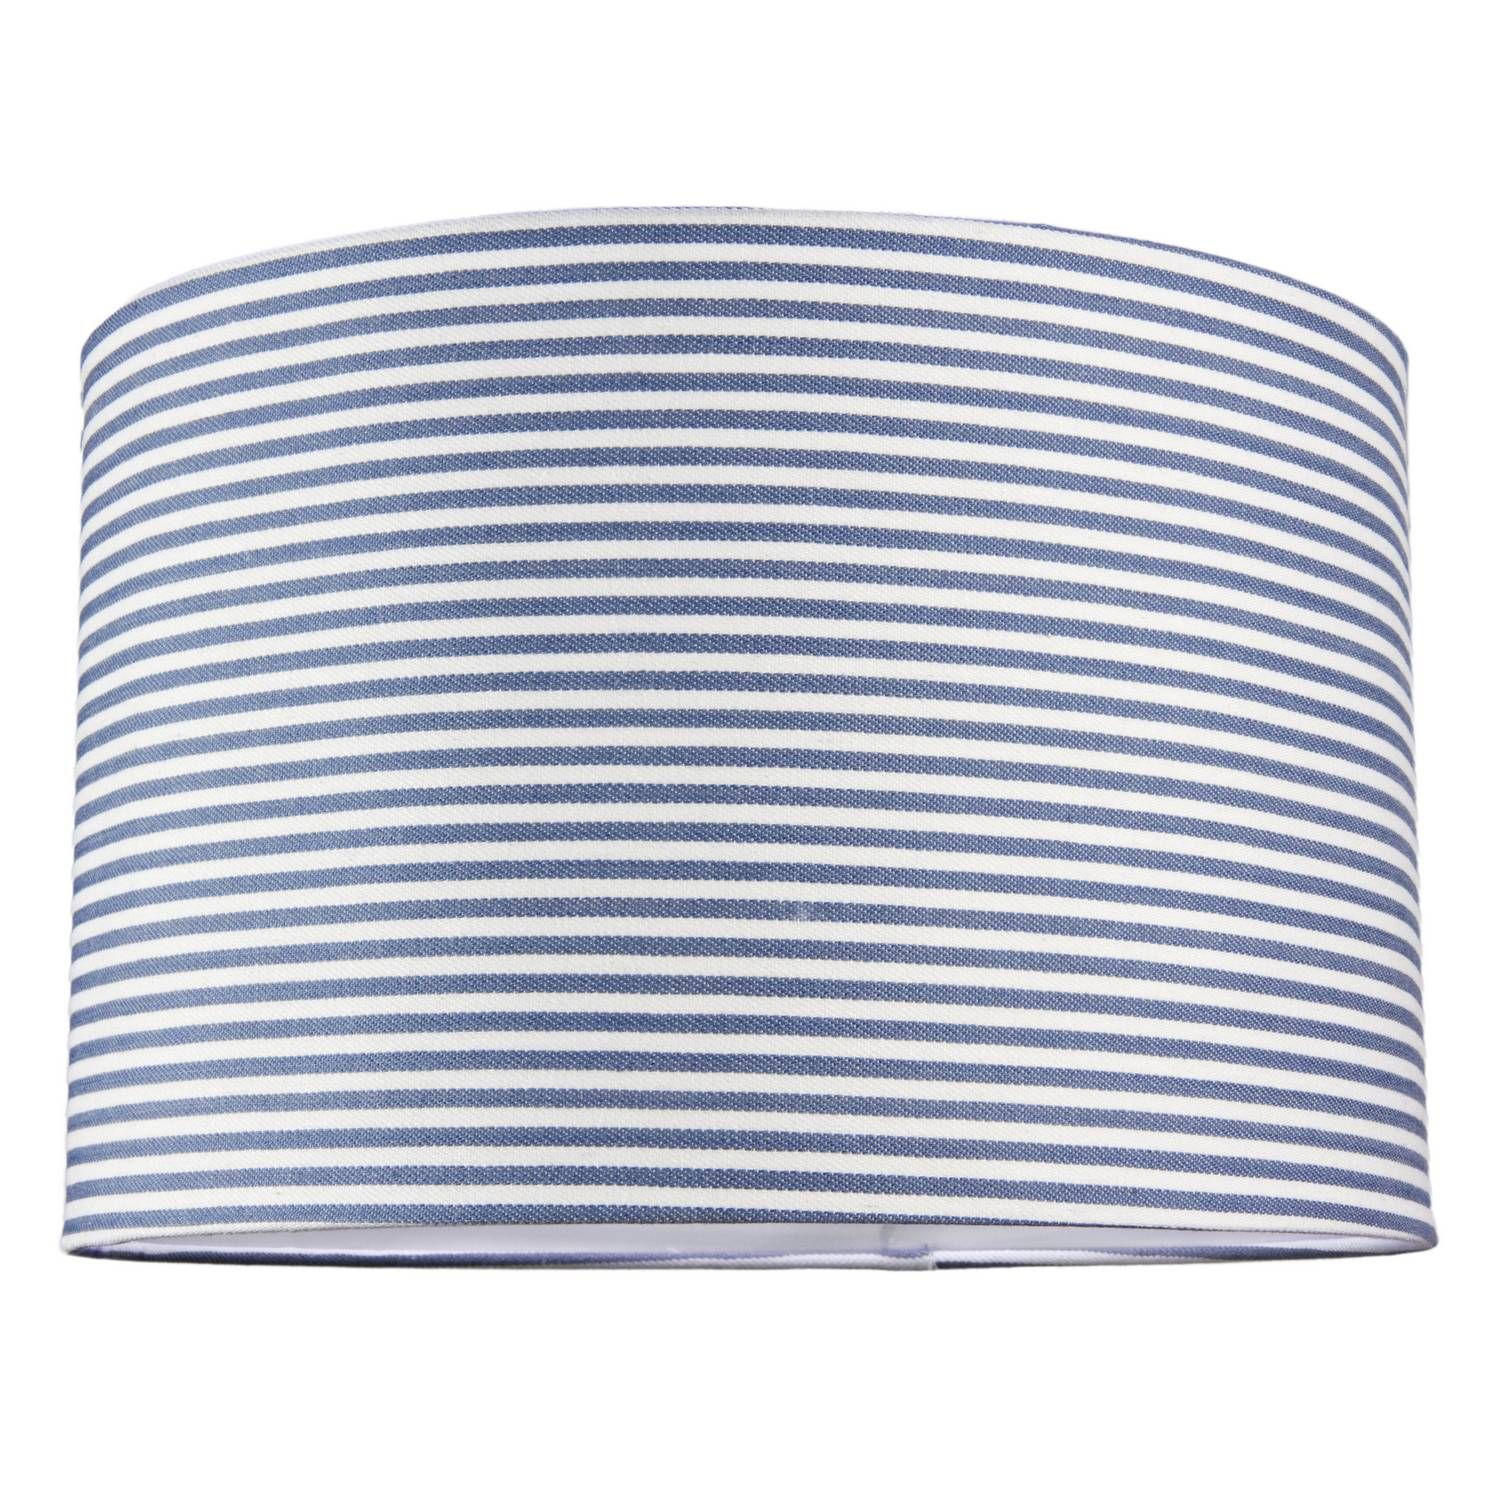 Purchase Nautical Stripe Cylinder Light Shade online at